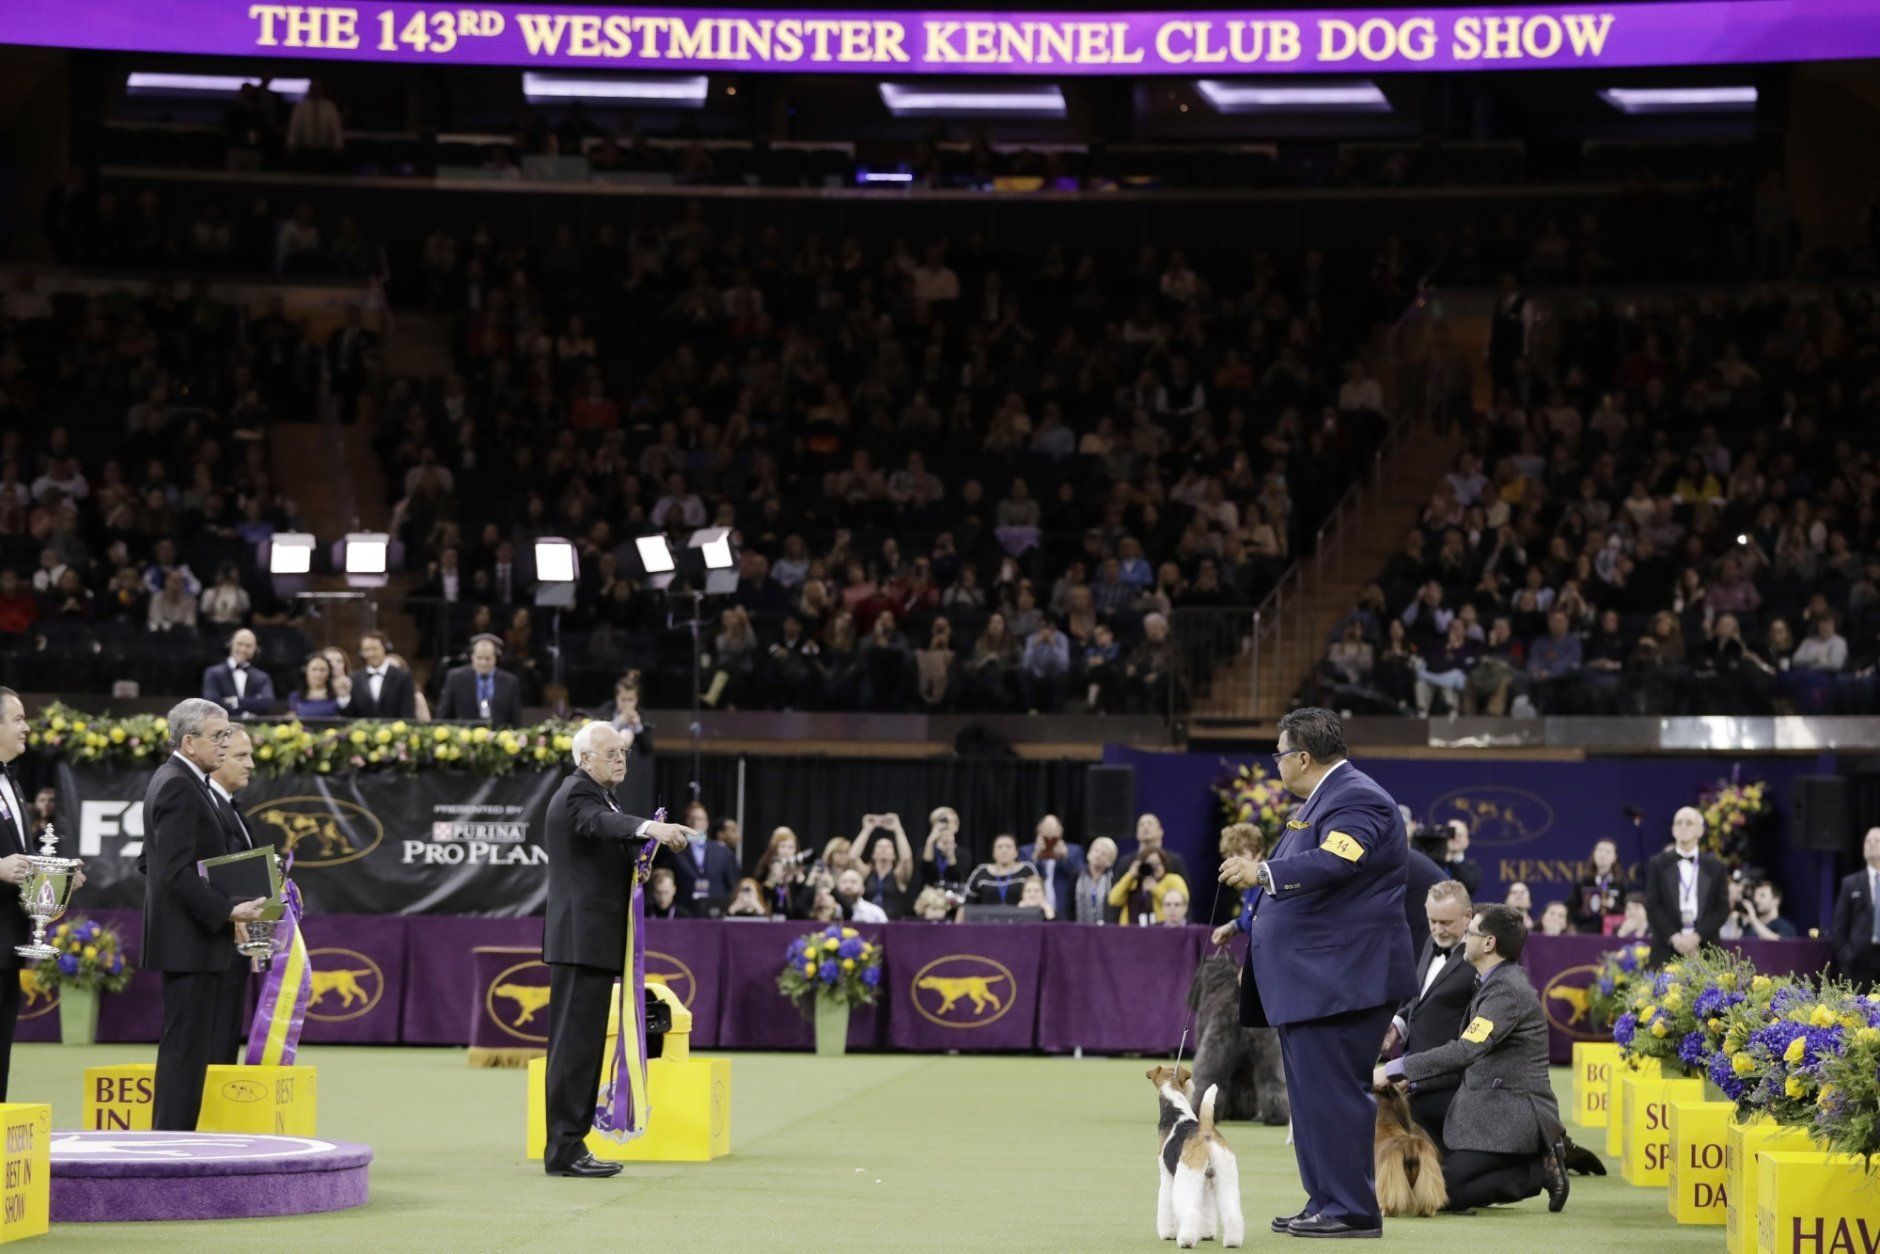 The judge points to King, a wire fox terrier, as Best in Show at the 143rd Westminster Kennel Club Dog Show Tuesday, Feb. 12, 2019, in New York. (AP Photo/Frank Franklin II)